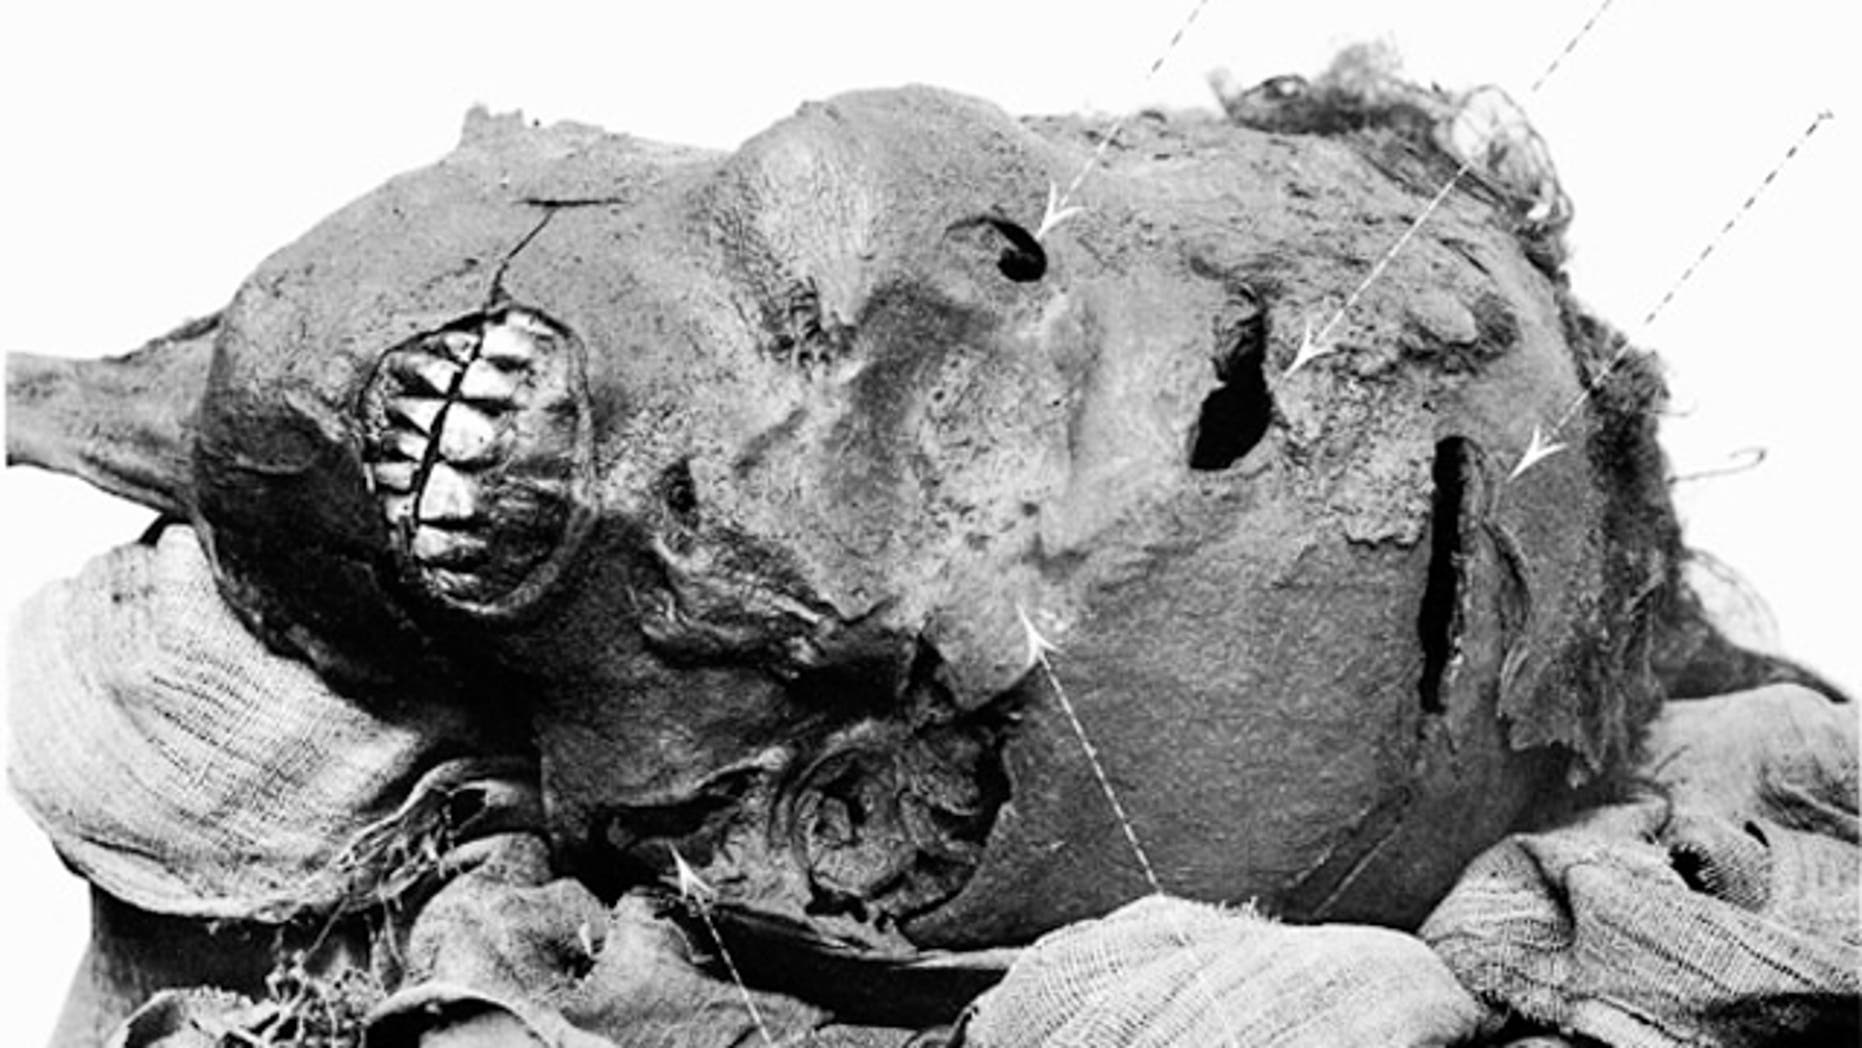 Pharaoh Seqenenre Tao II died from multiple ax wounds. He may have been killed in battle, executed afterwards, or possibly assasinated. A long dagger believed to belong to his son Kamose has evidence of wear and tear, suggesting that he used it to avenge his father's death.